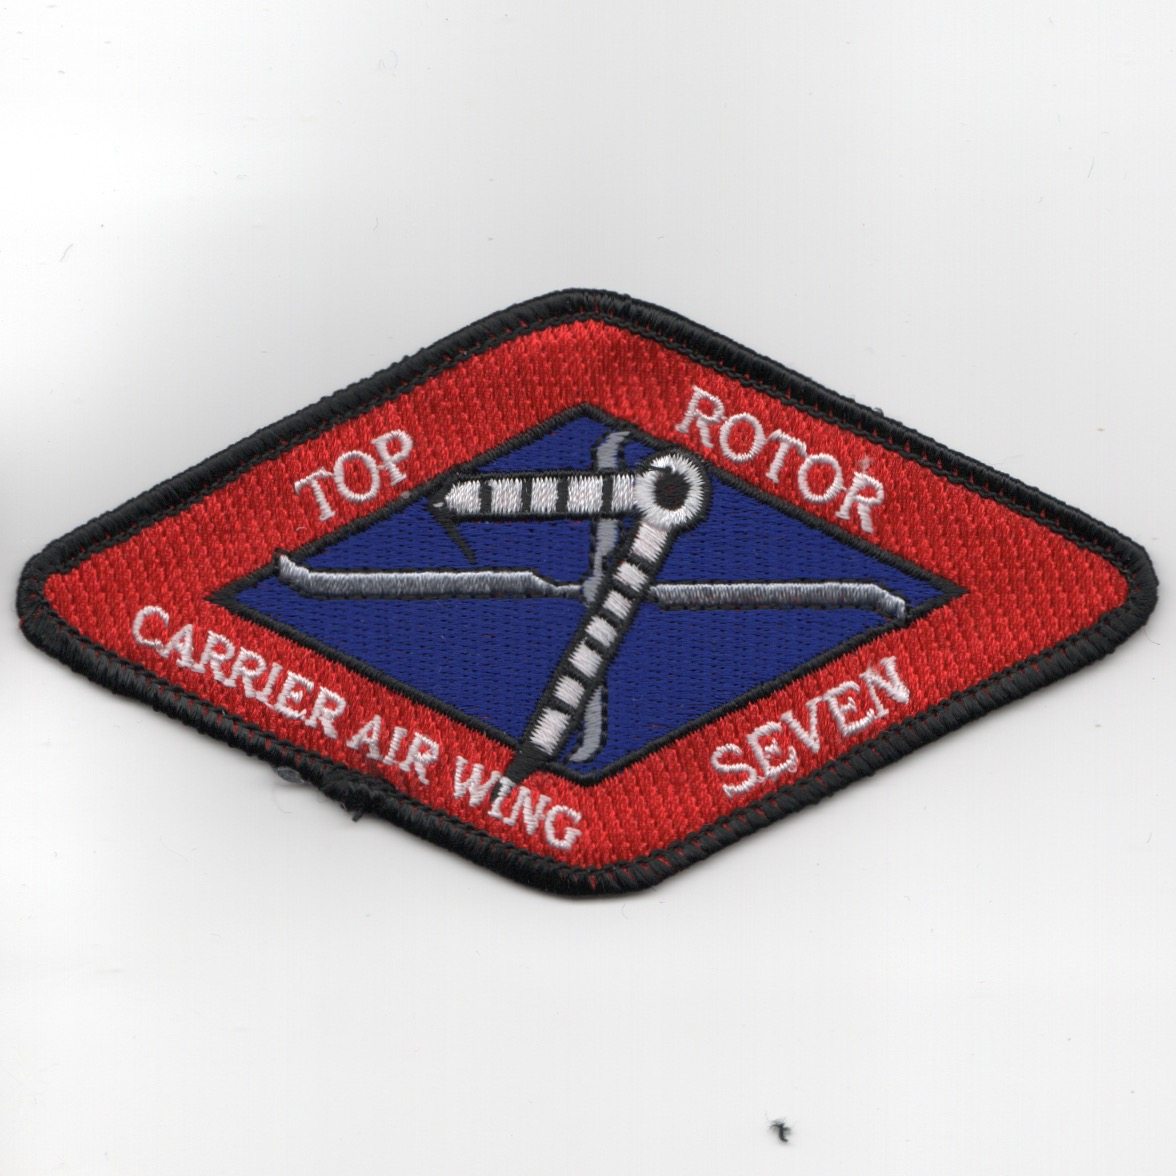 CVW-7 'TOP ROTOR' Patch